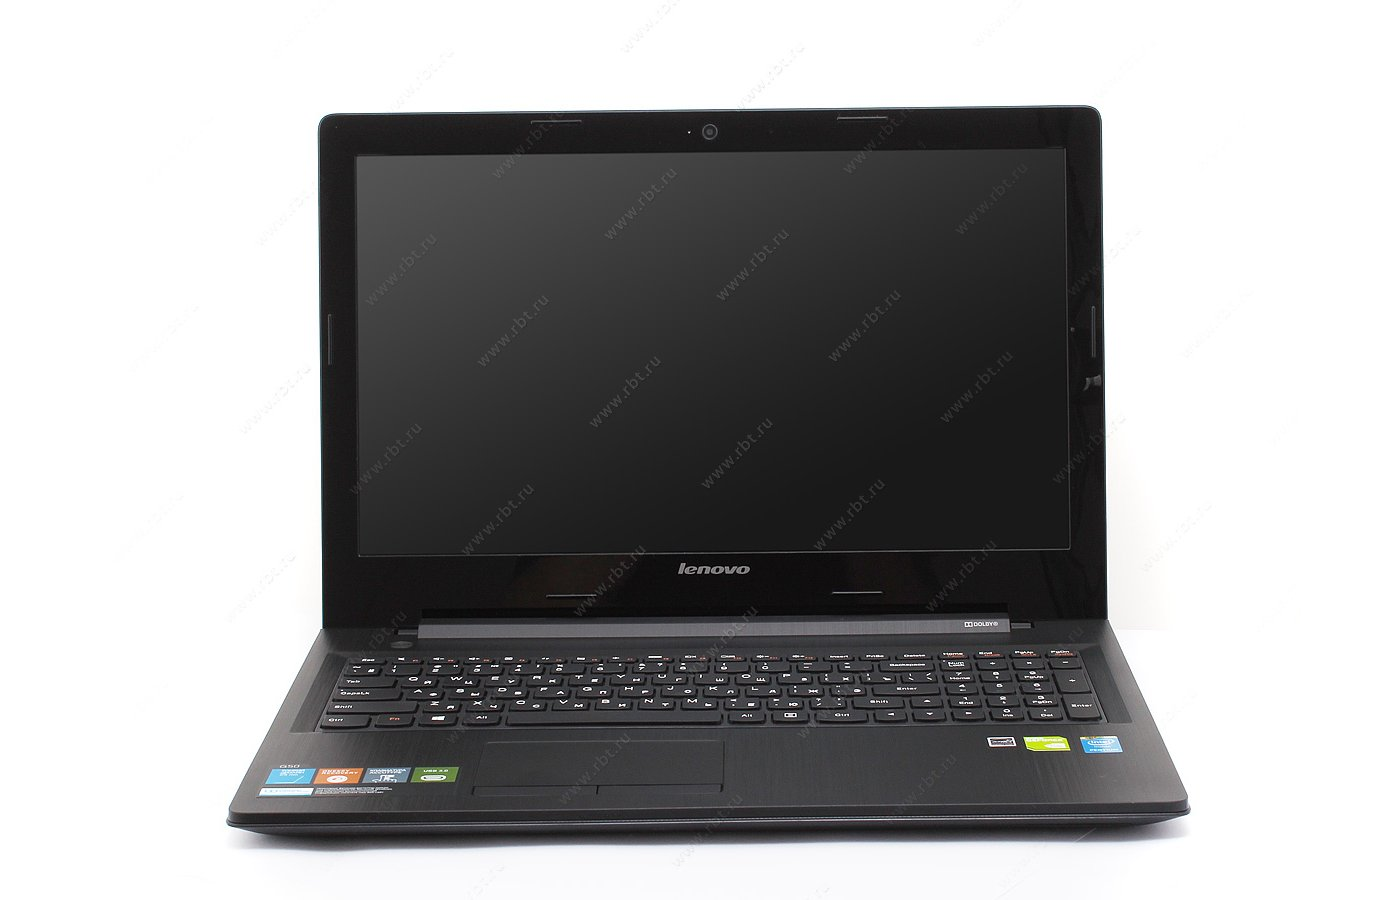 Ноутбук Lenovo IdeaPad G50-30 /80G0025GRK/ intel N3540/2Gb/250Gb/GF820M 1G/15.6/WiFi/Win8